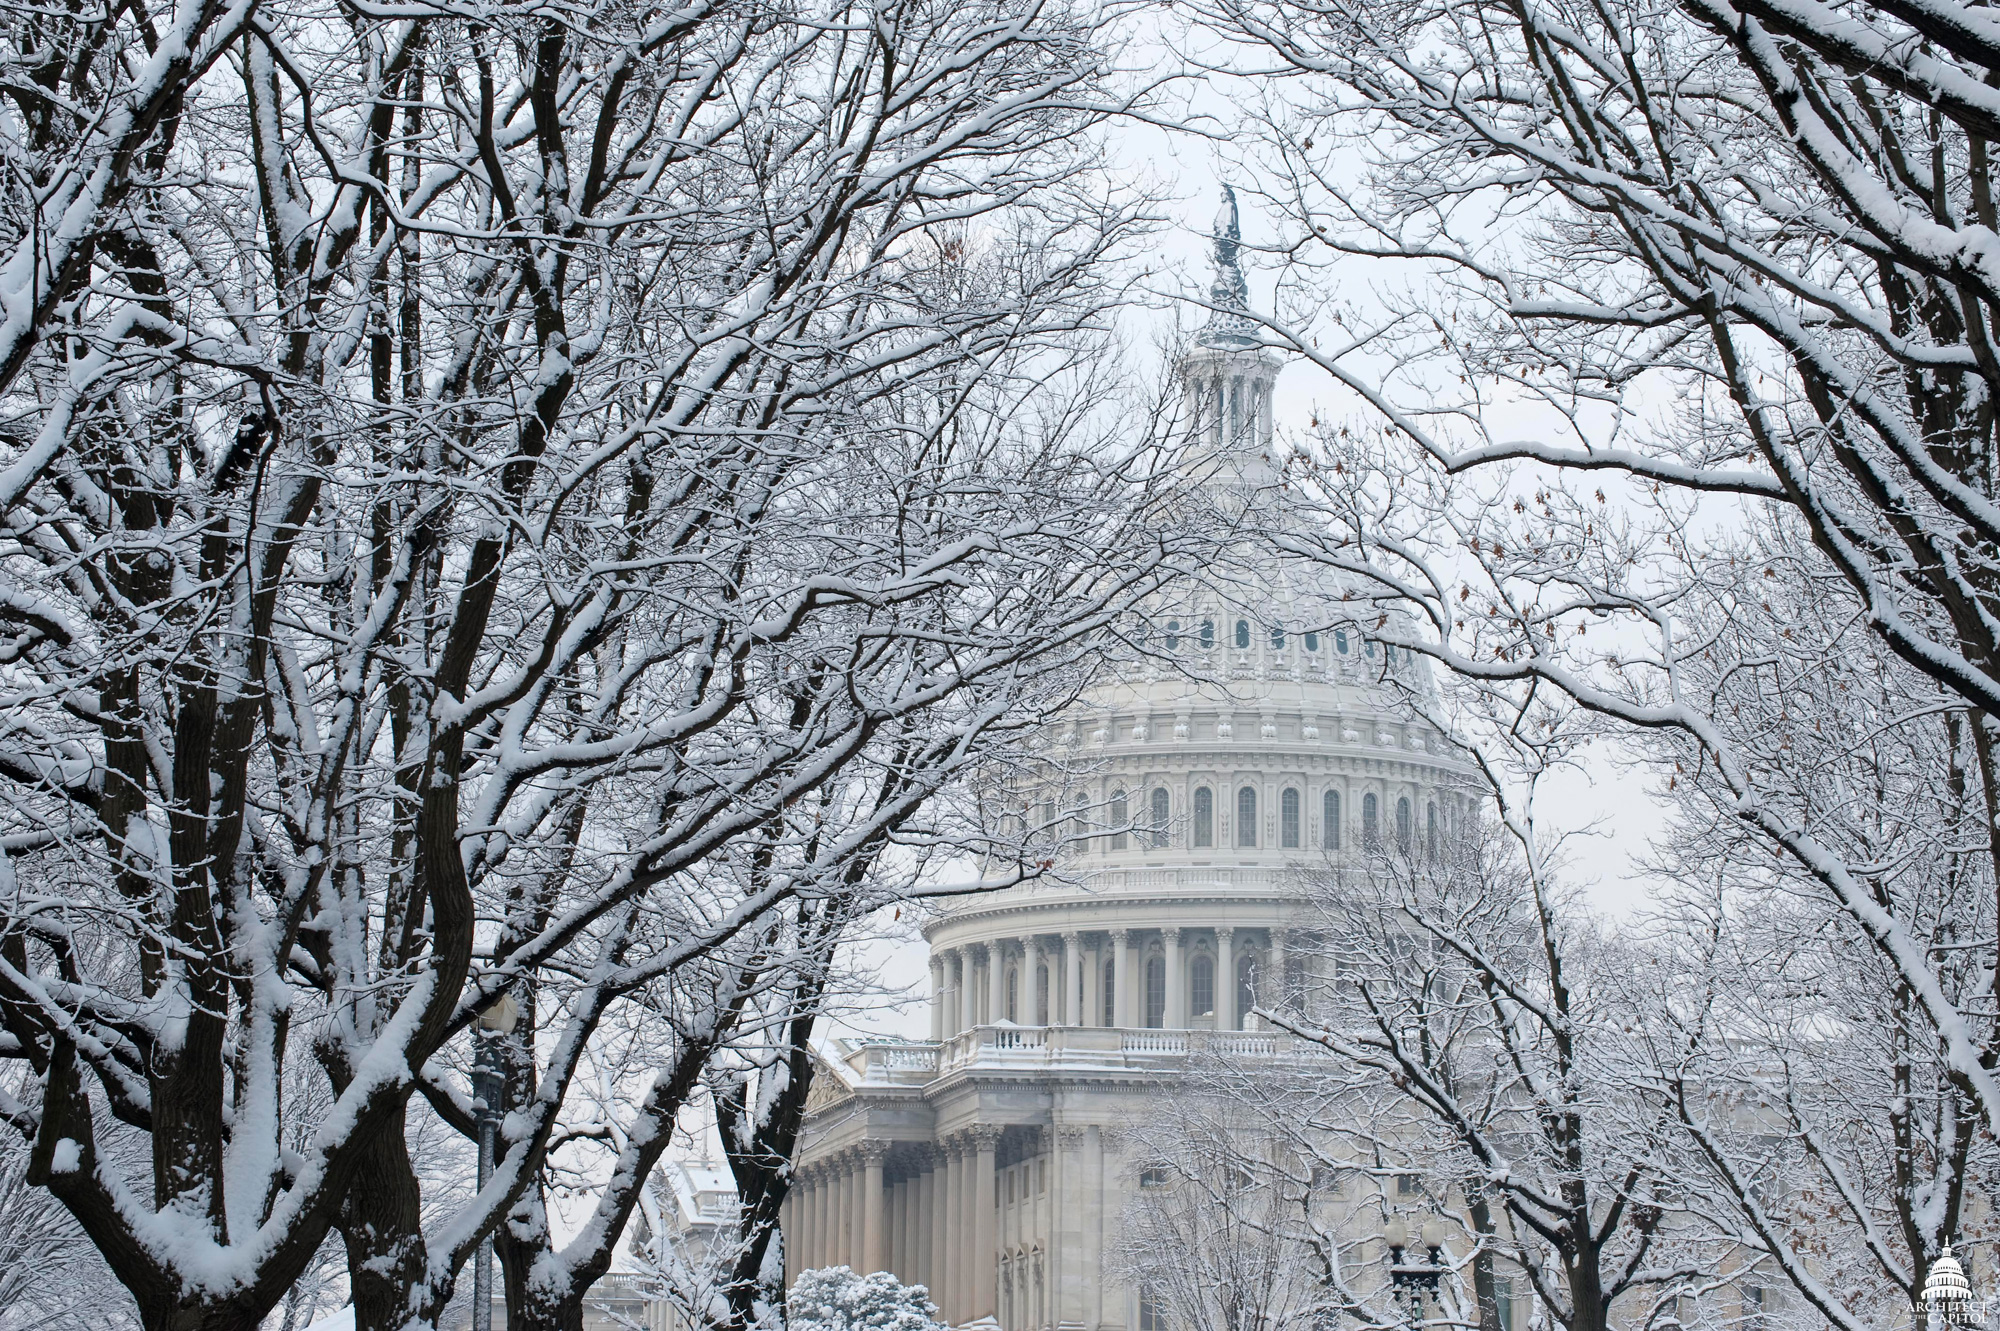 https://upload.wikimedia.org/wikipedia/commons/3/3f/Flickr_-_USCapitol_-_U.S._Capitol_Dome_in_Snow.jpg